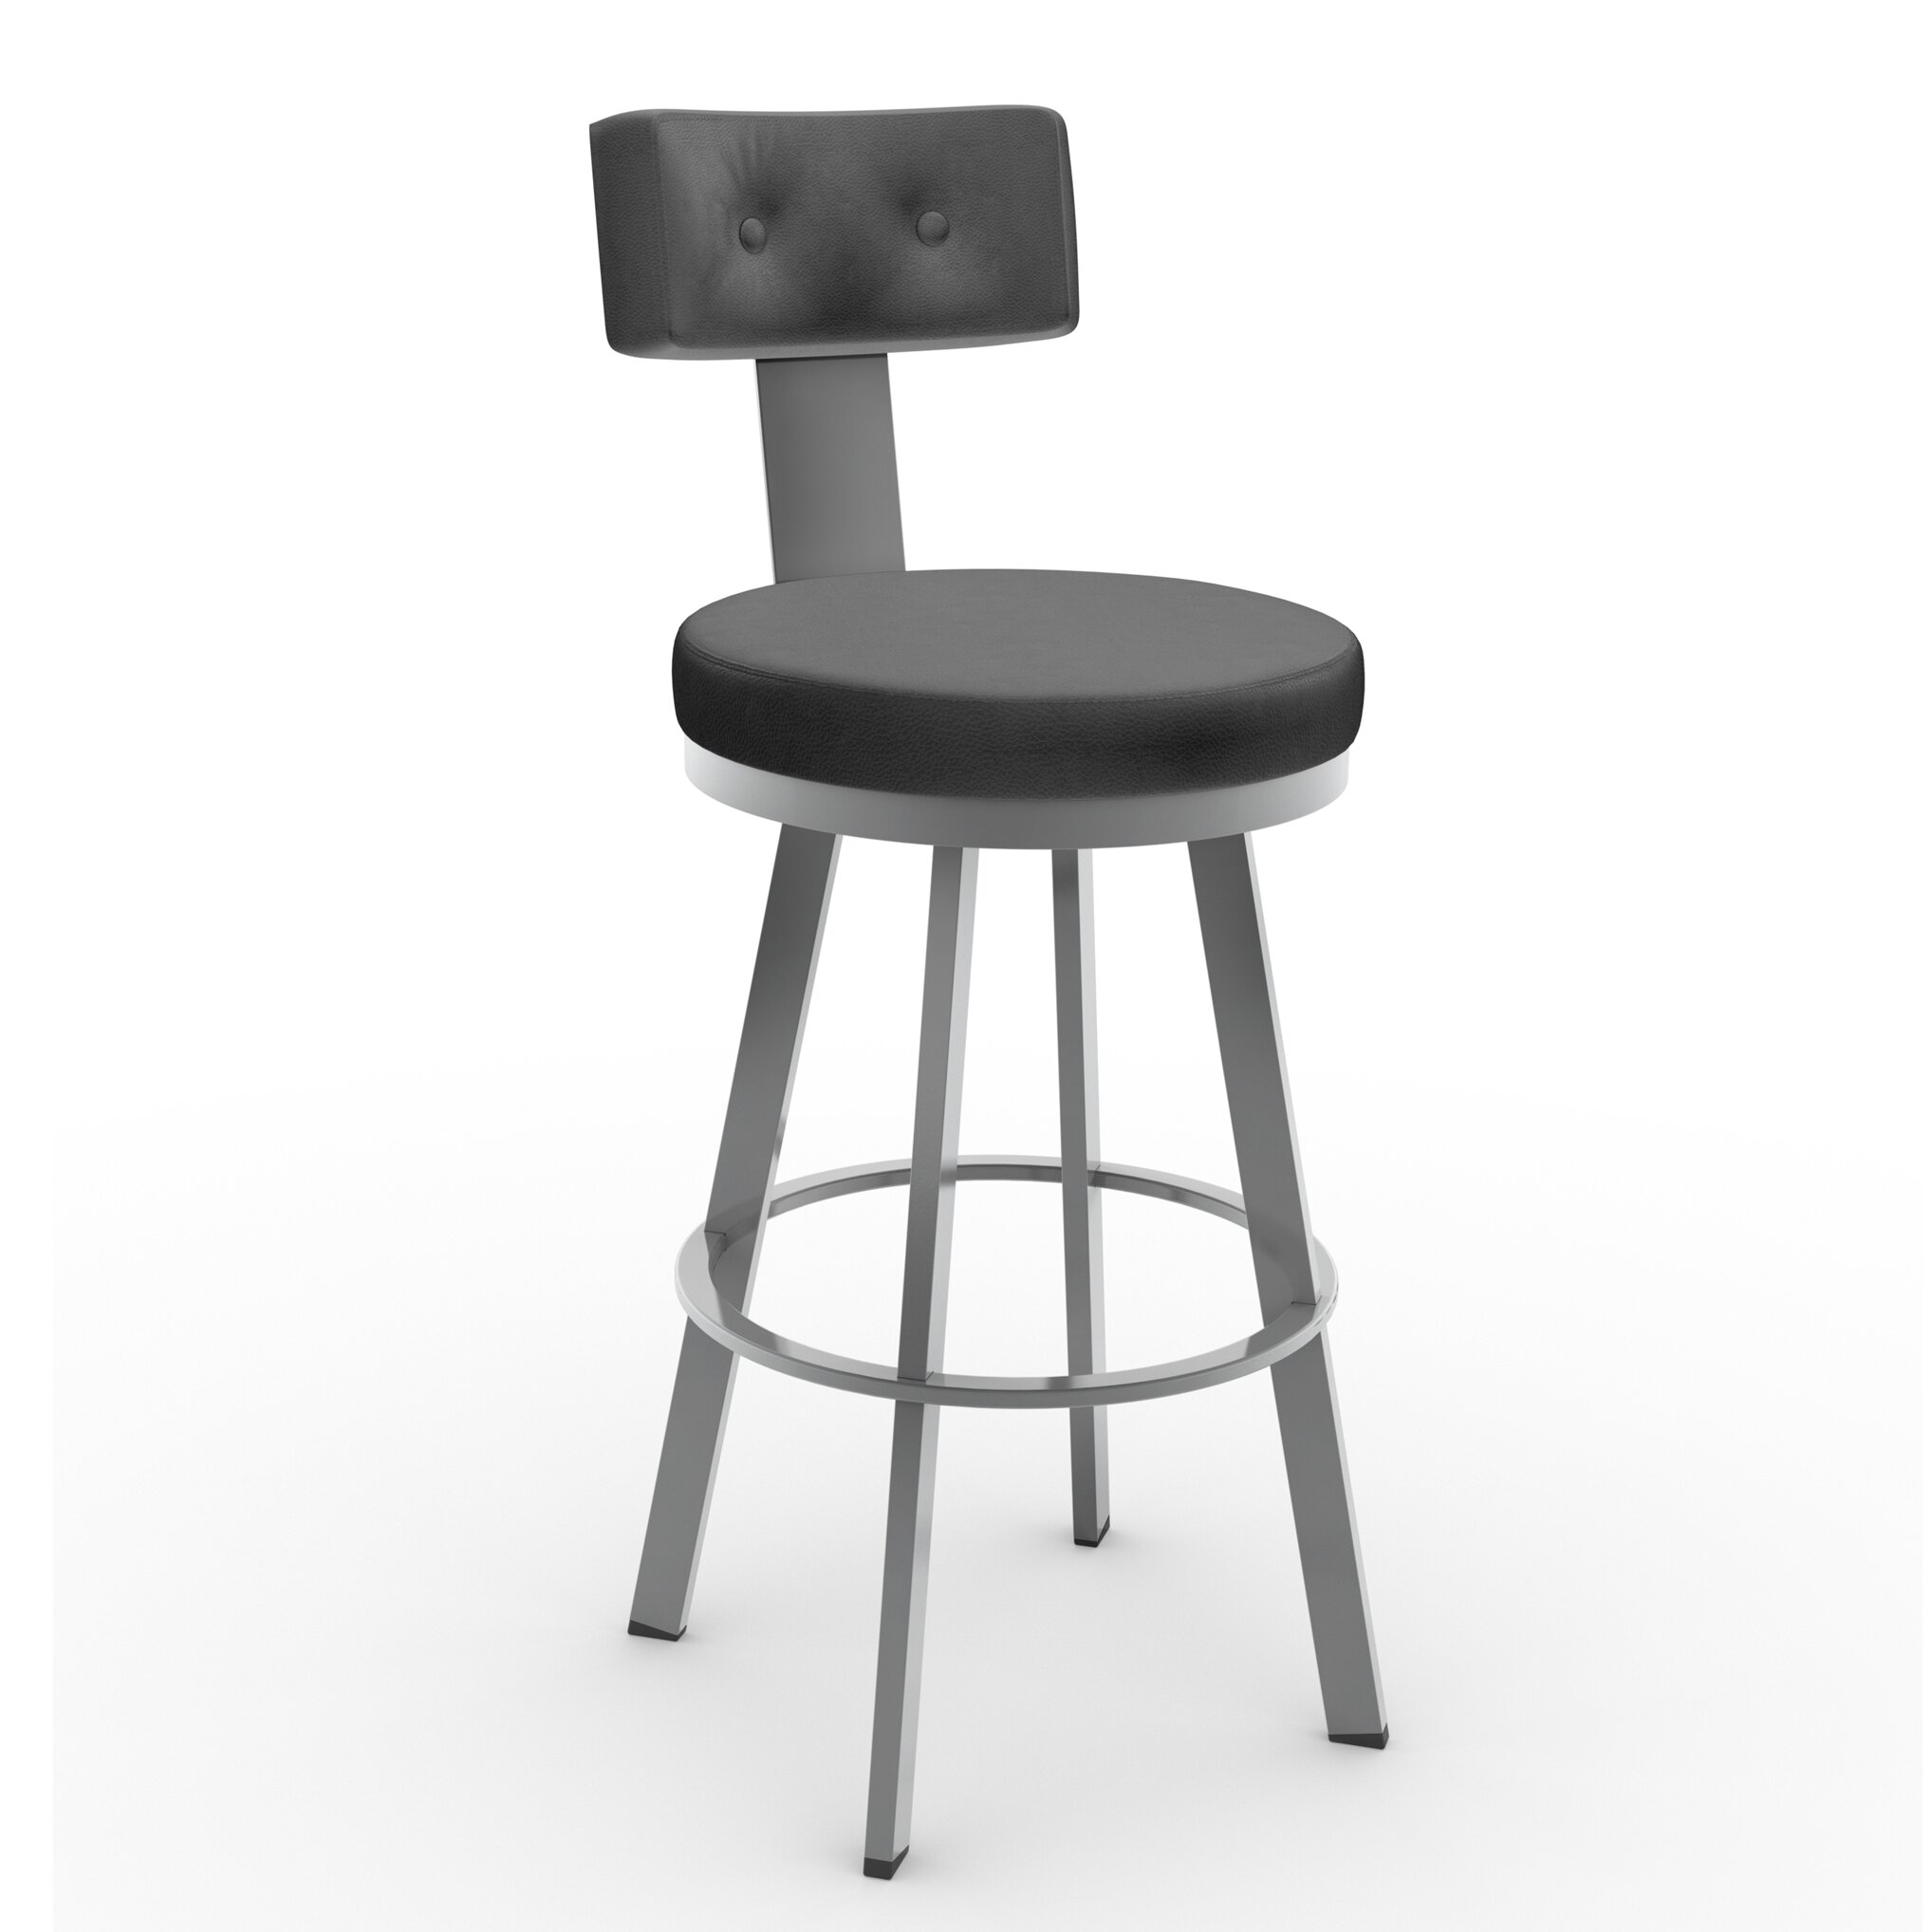 Amisco Tower 2625quot Swivel Bar Stool amp Reviews Wayfair : Amisco Tower 2625 Swivel Bar Stool from www.wayfair.com size 2036 x 2036 jpeg 195kB